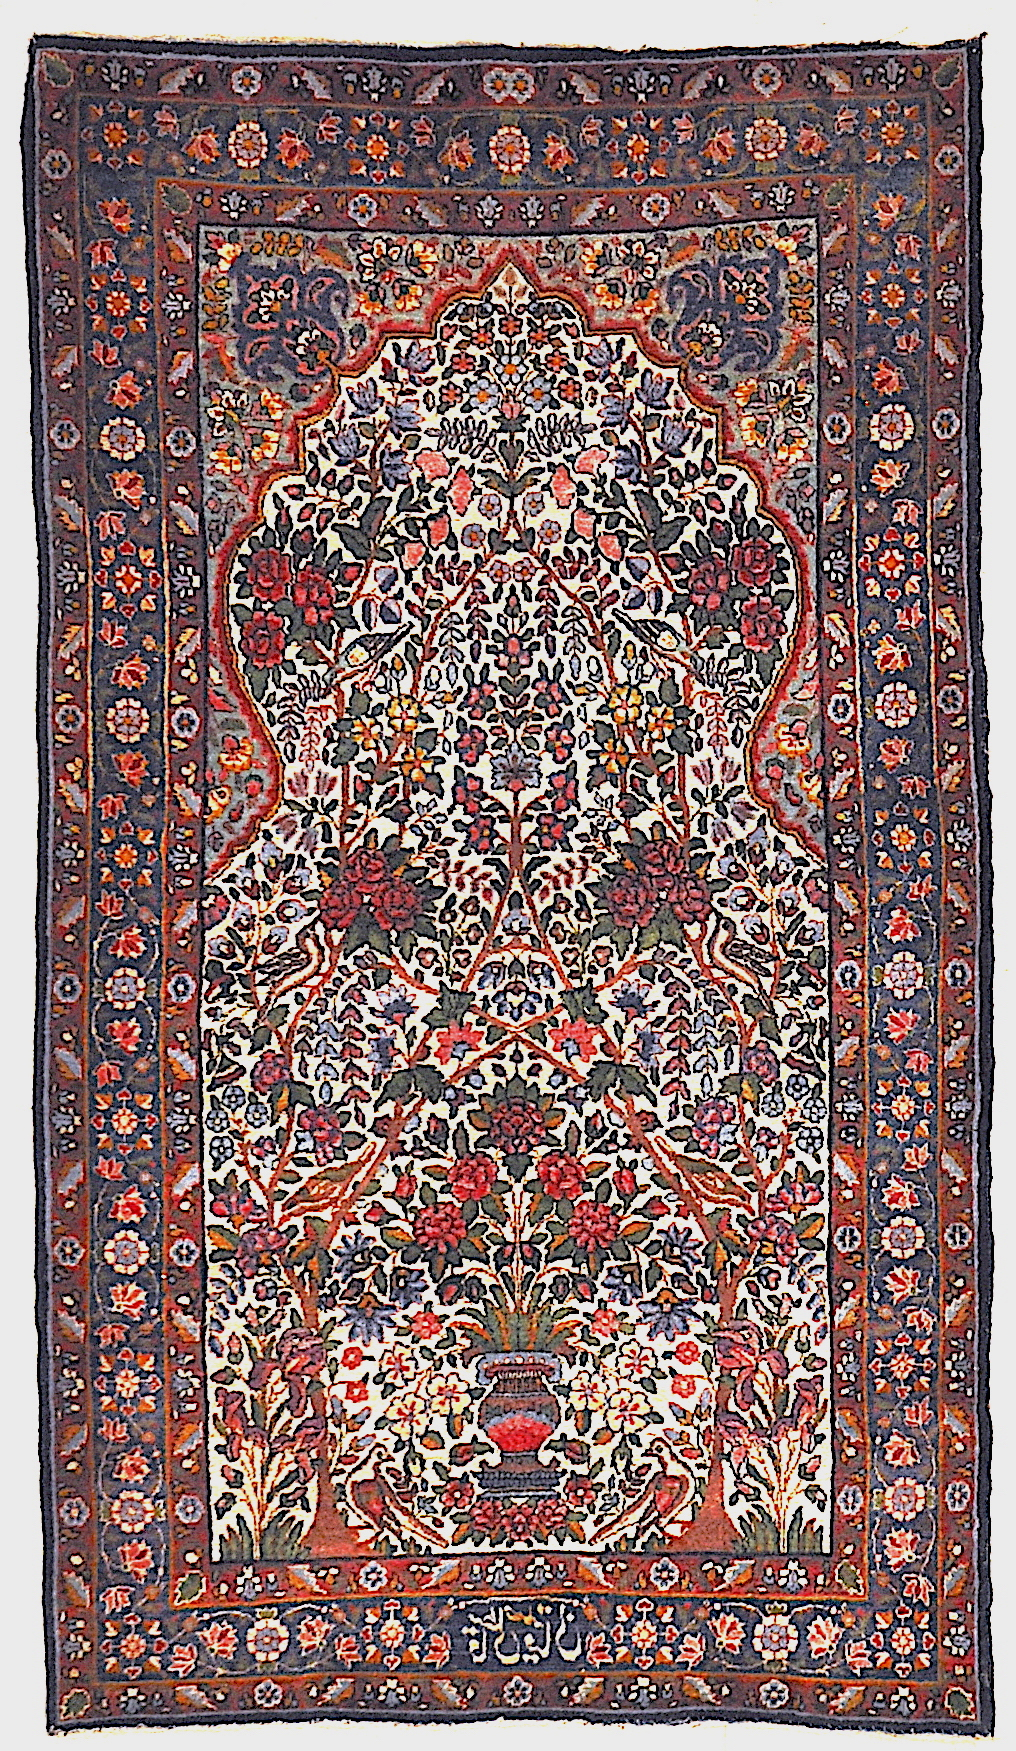 Antique Persian Garden of Paradise Kerman Rug Genuine Authentic Intricate Woven Carpet Art Santa Barbara Design Center Rugs and More